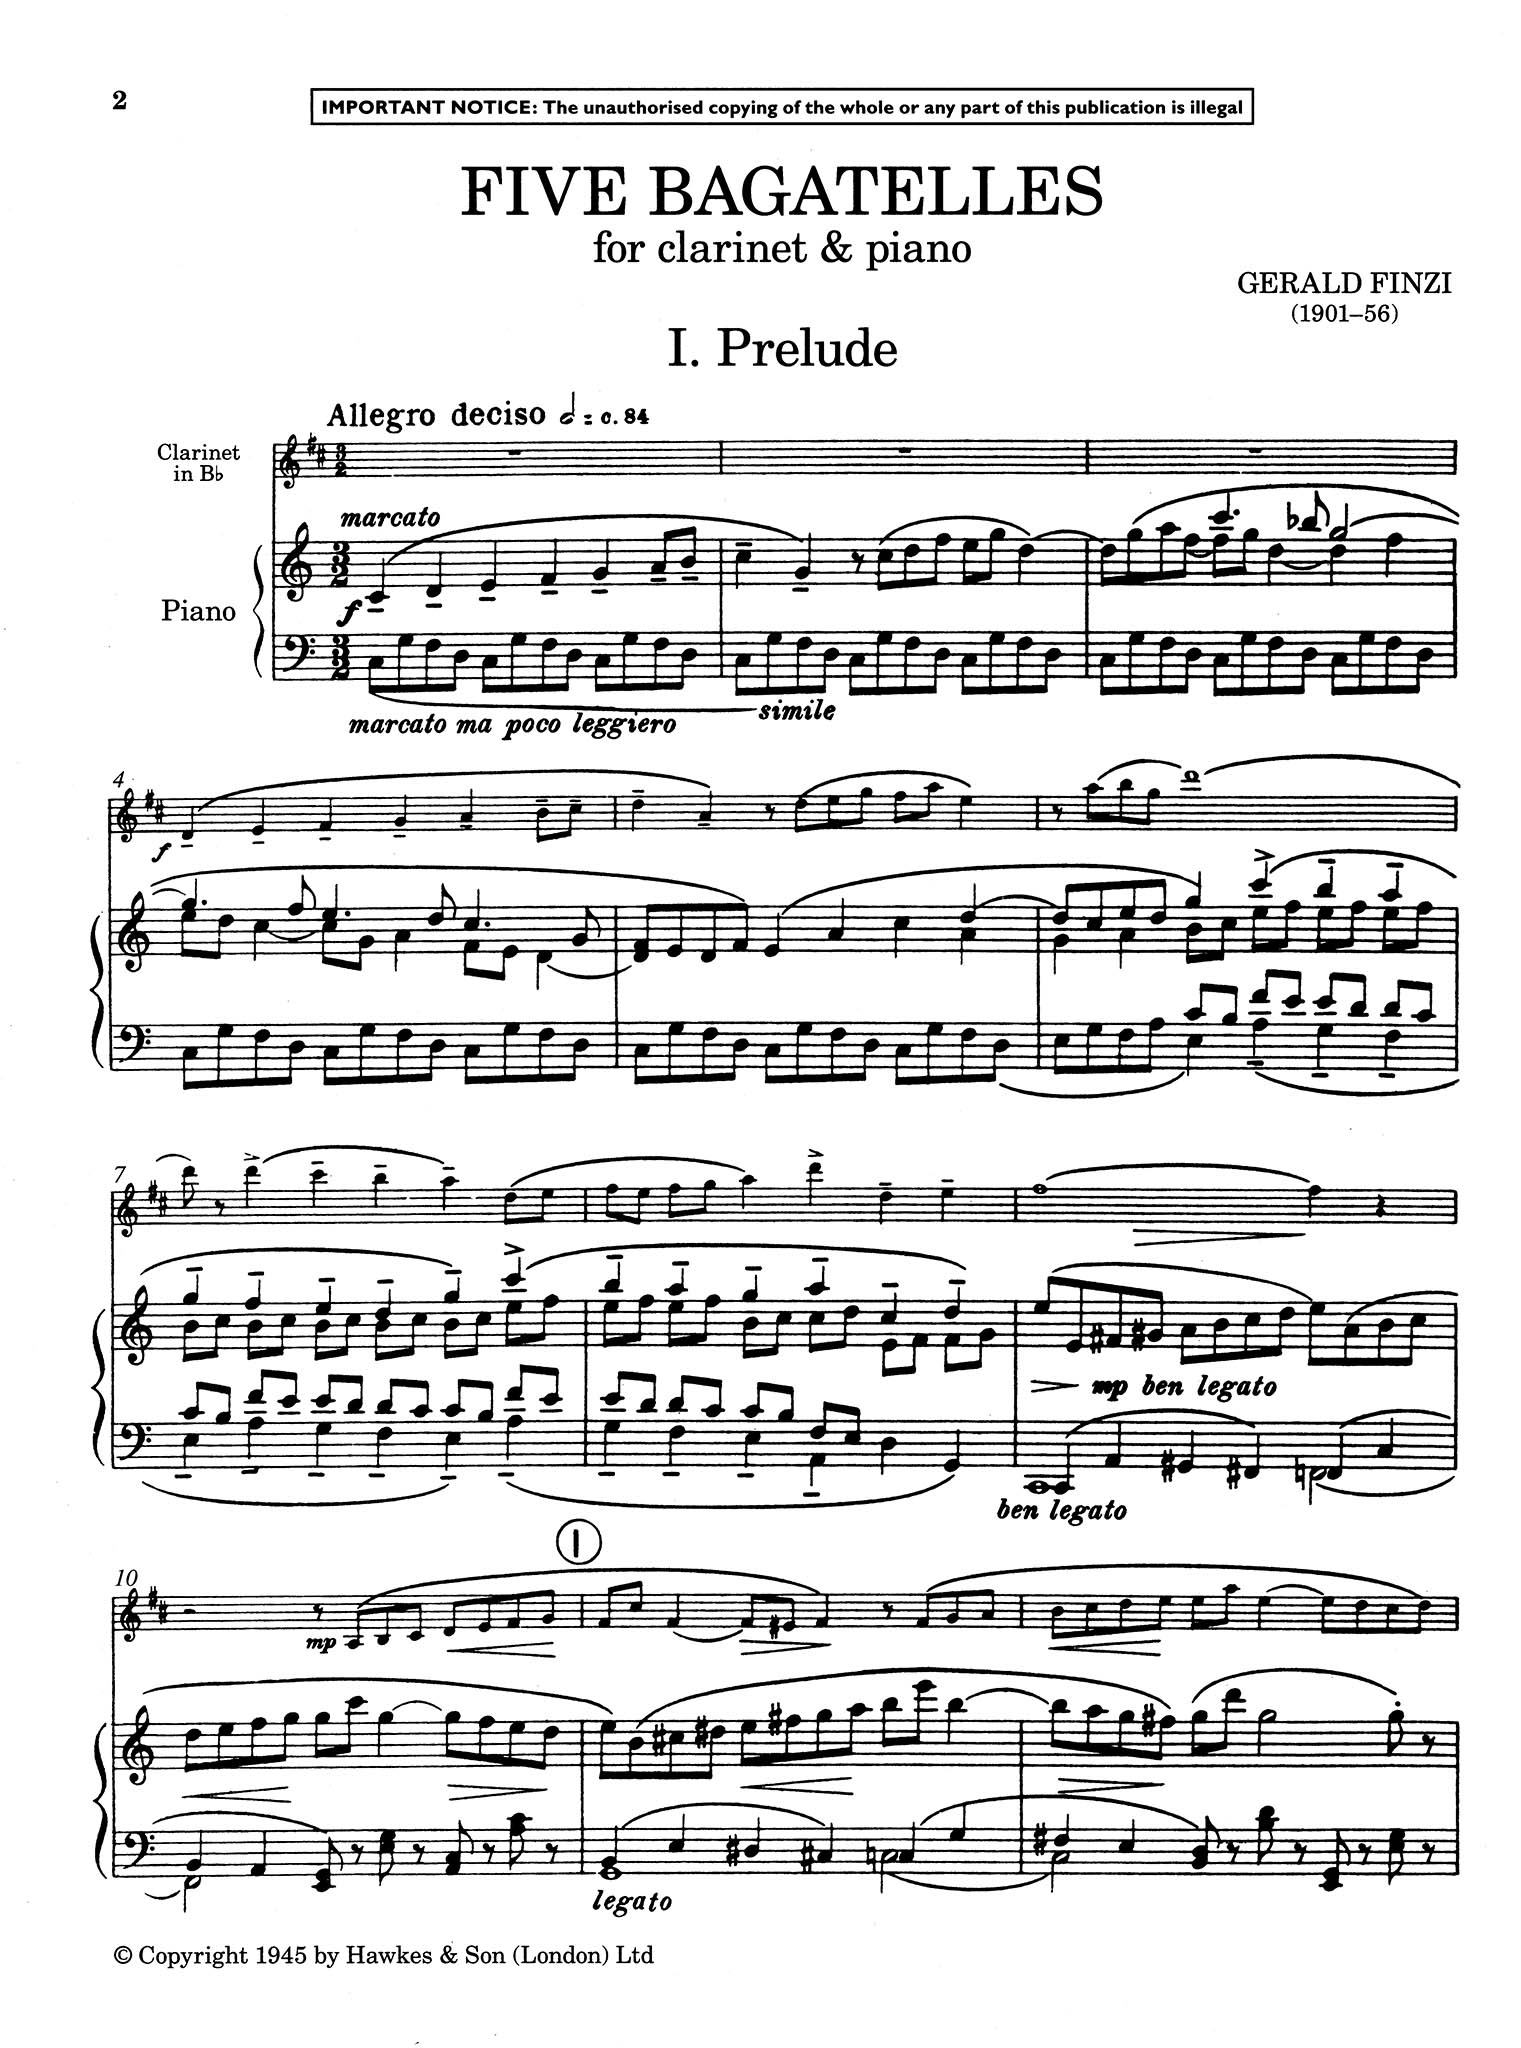 Five Bagatelles, Op. 23 - Movement 1